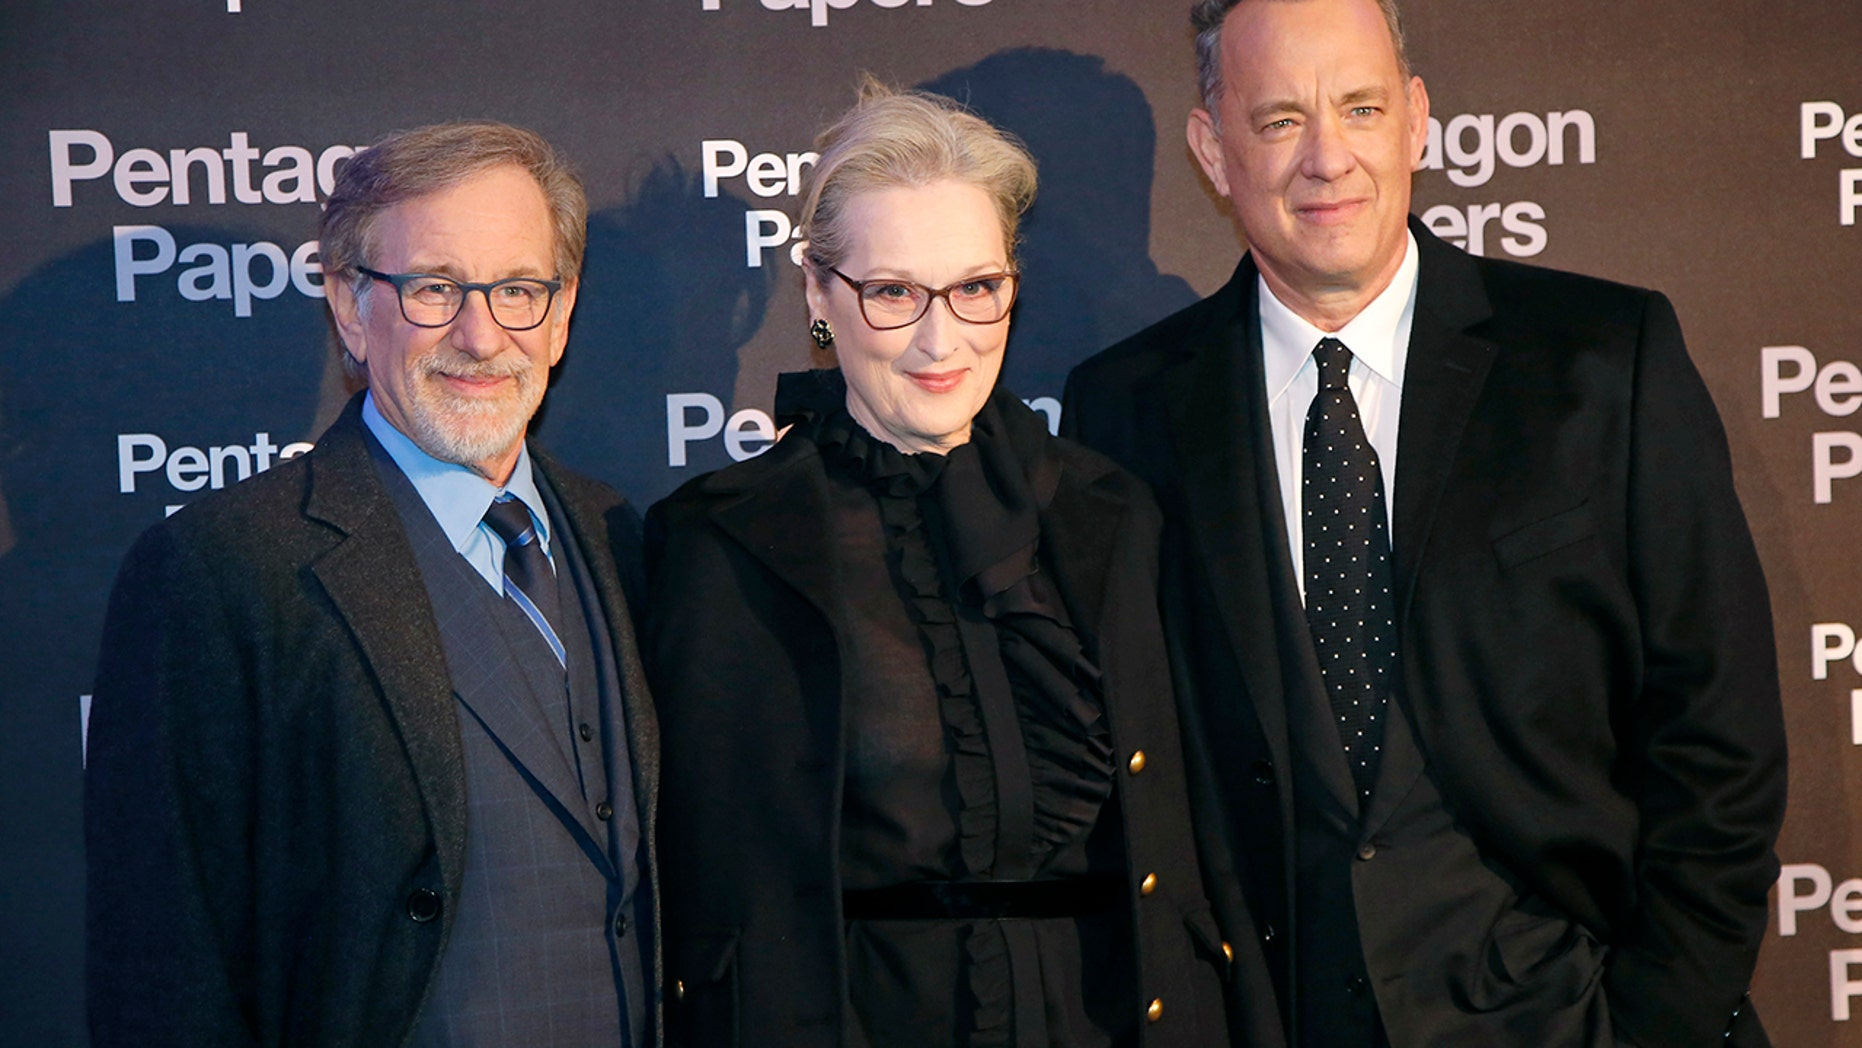 From left, director Steven Spielberg, actors Meryl Streep and Tom Hanks pose for photographers on arrival at the French premiere of the film 'The Post' in Paris, France, Saturday, Jan. 13, 2018.